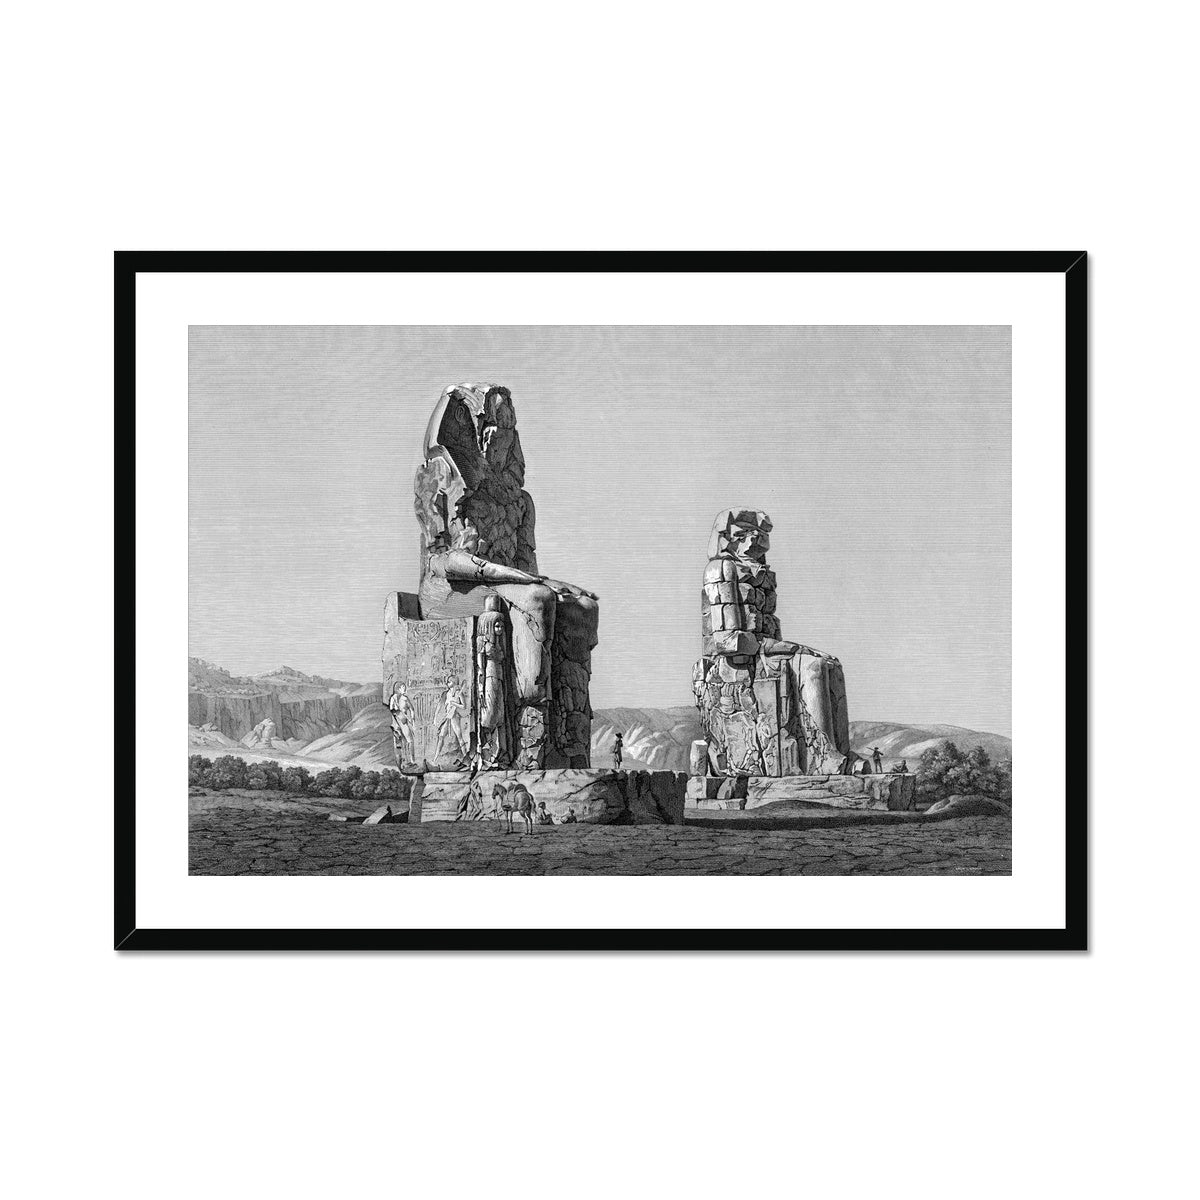 Colossi of Memnon View - Memnonium - Thebes Egypt -  Framed & Mounted Print